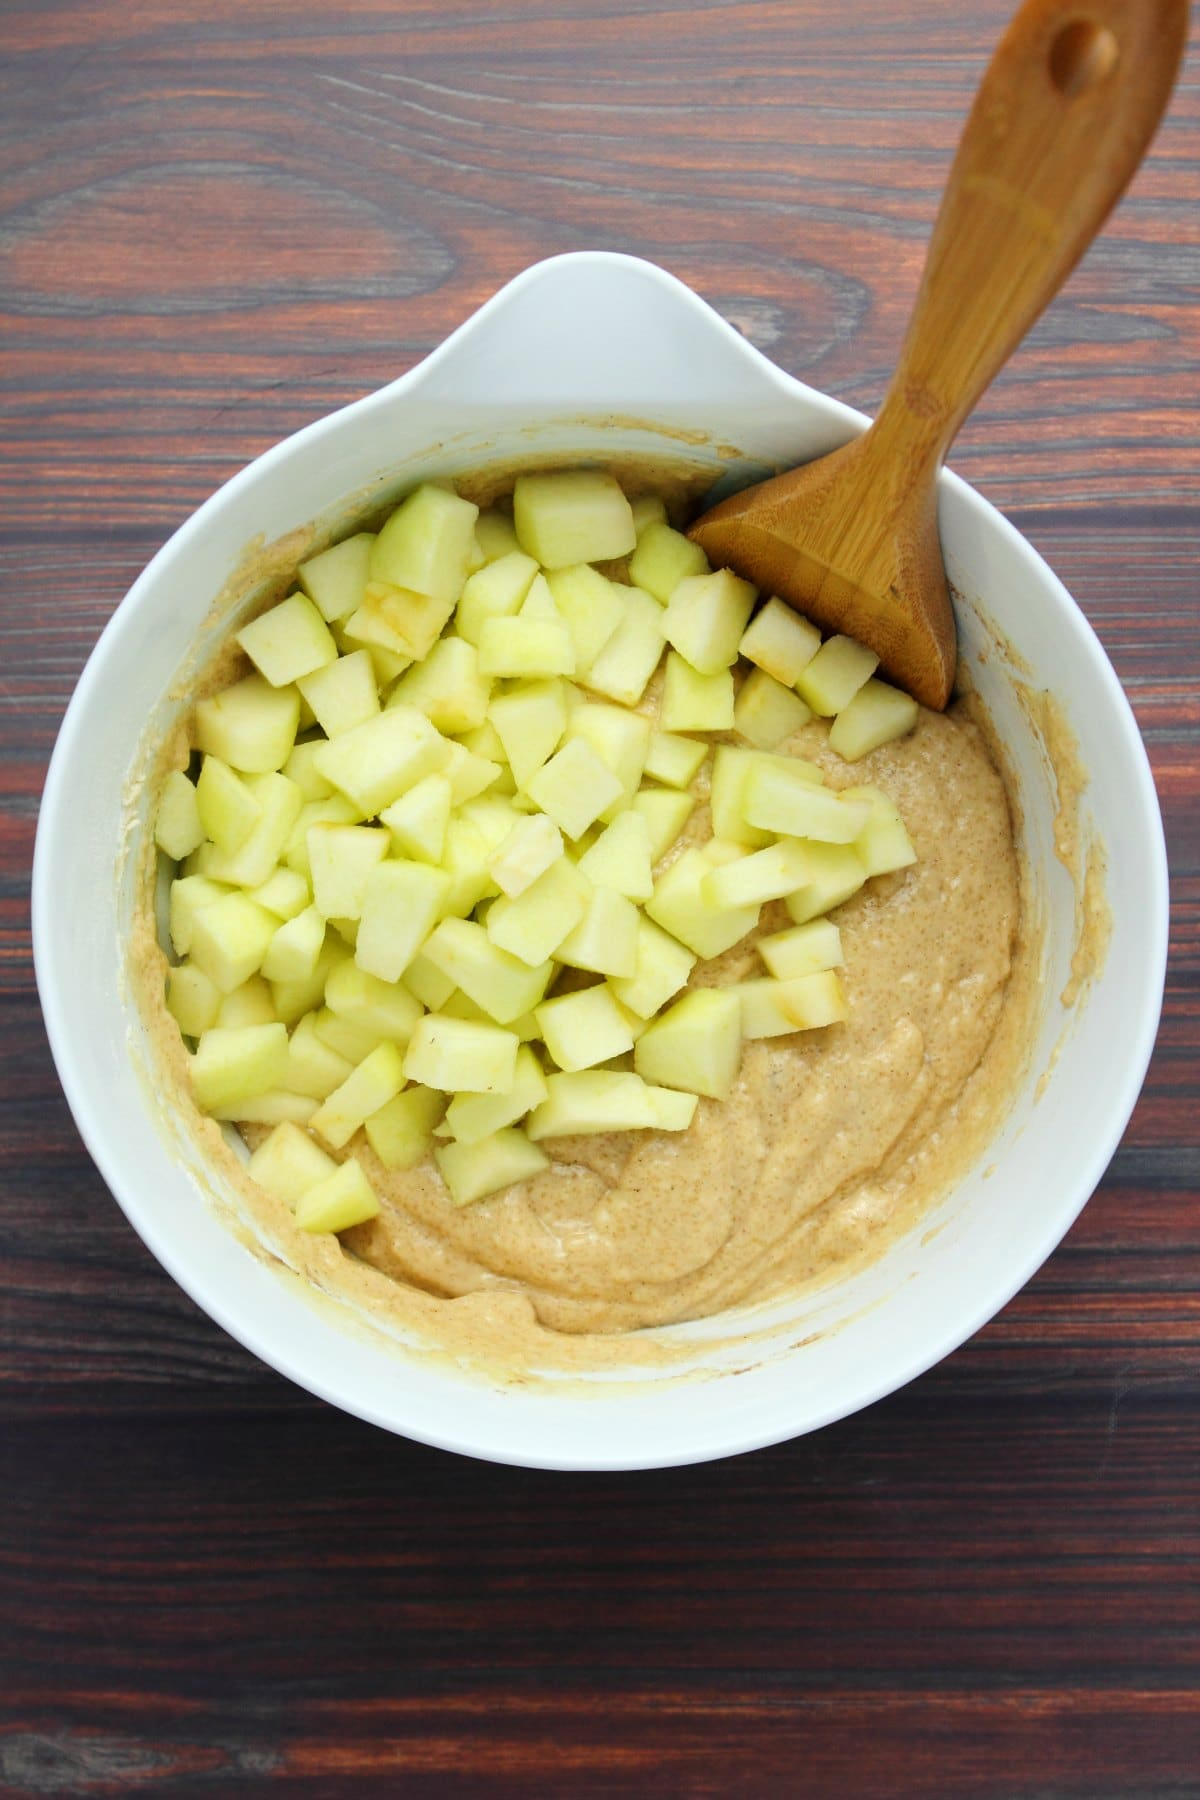 Chopped apple slices on top of vegan apple cake batter in a white mixing bowl.